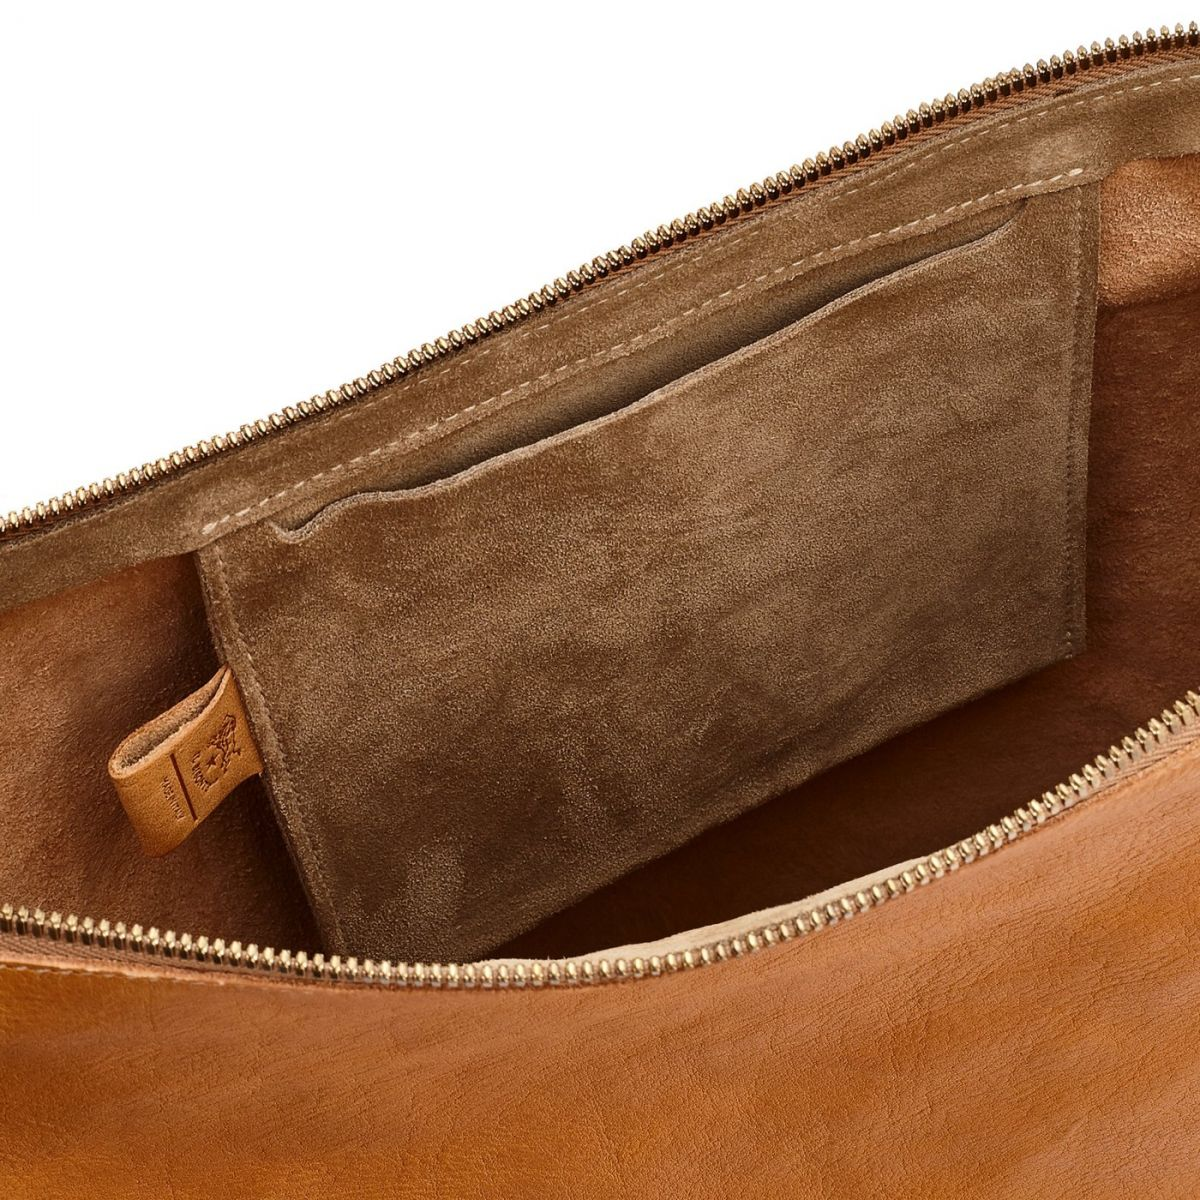 Women's Shoulder Bag Pantelleria in Vintage Cowhide Leather BSH082 color Natural | Details